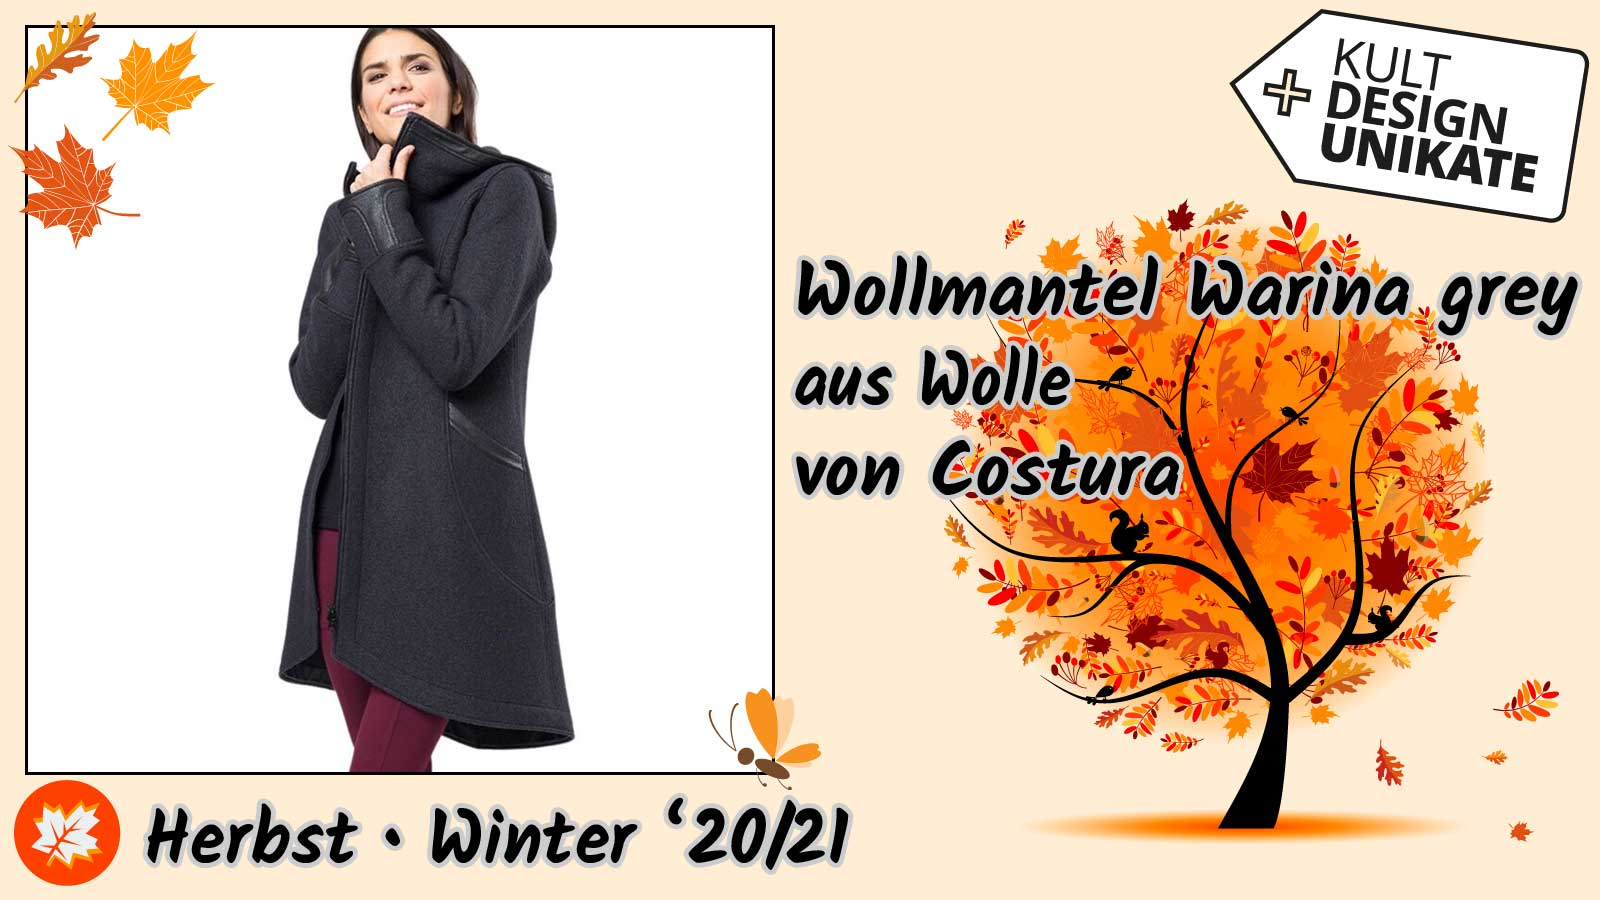 Costura-Wollmantel-Warina-grey